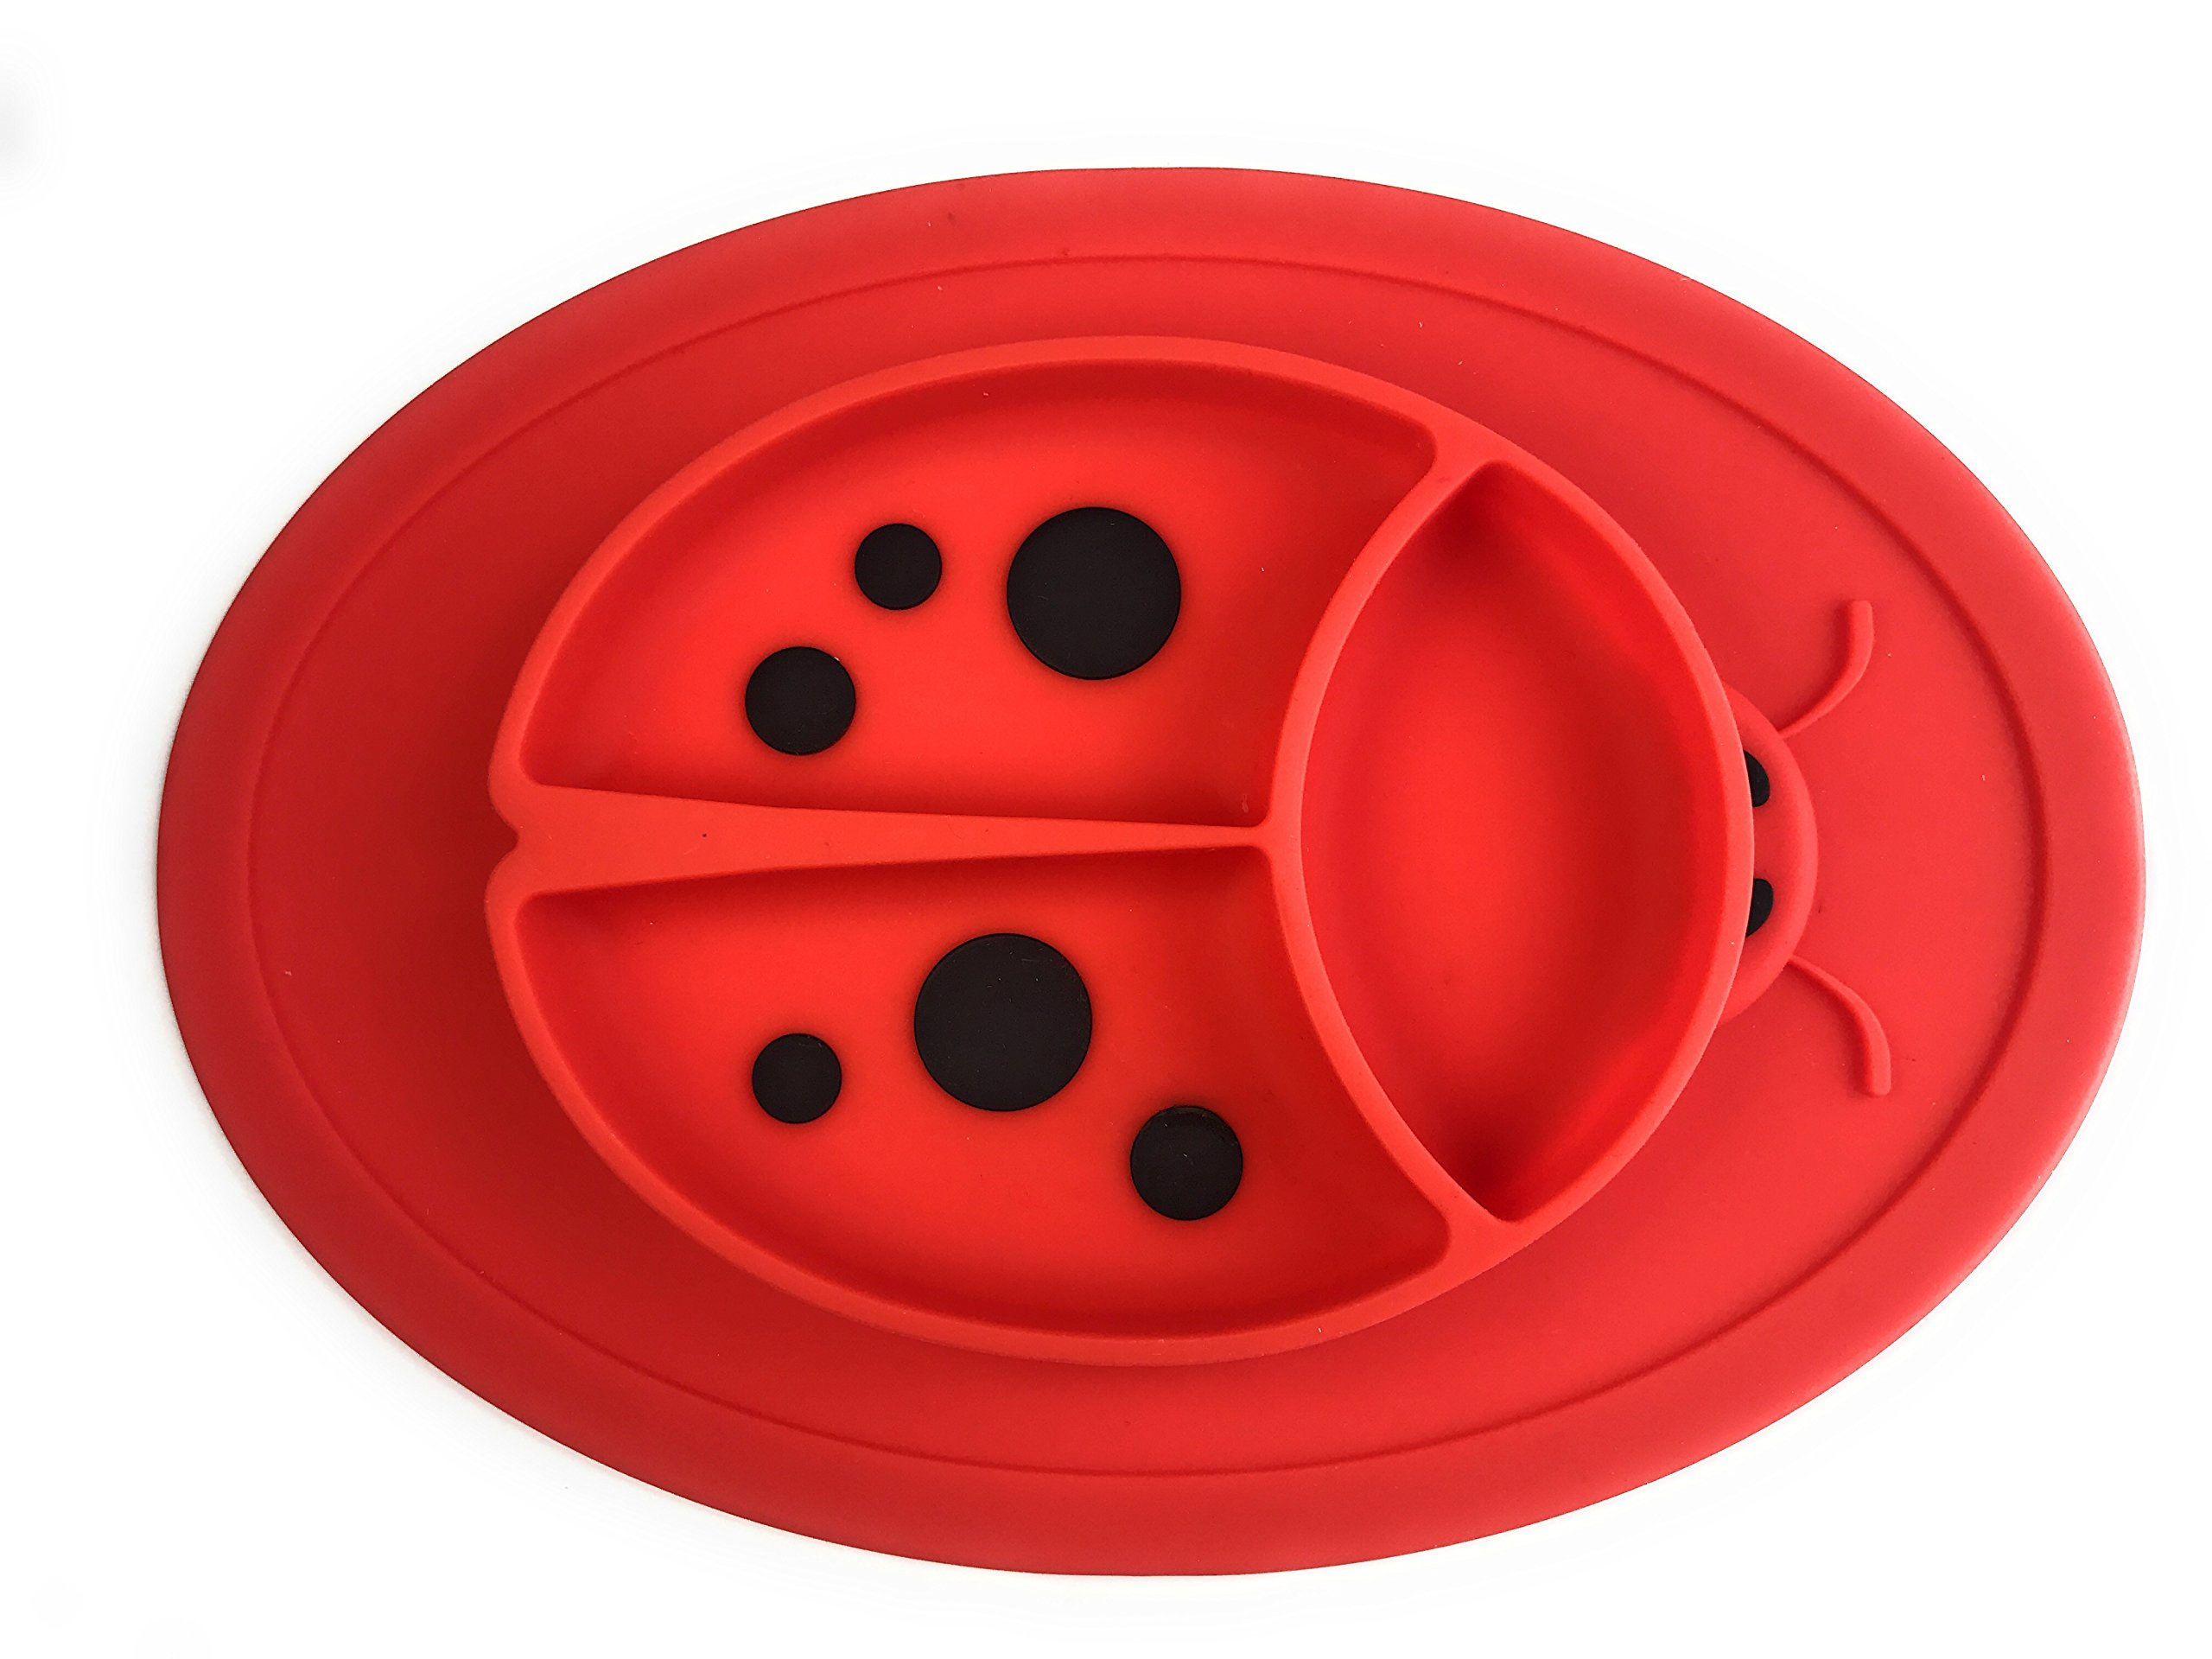 Silicone Mini Placemat - Baby Plate - Toddler Feeding Mat - by Hot1cE - Strong Suction Base - Portable - BPA Free - 100% Food Grade Silicone - Fits most highchairs, Microwave and Dishwasher safe (RED)